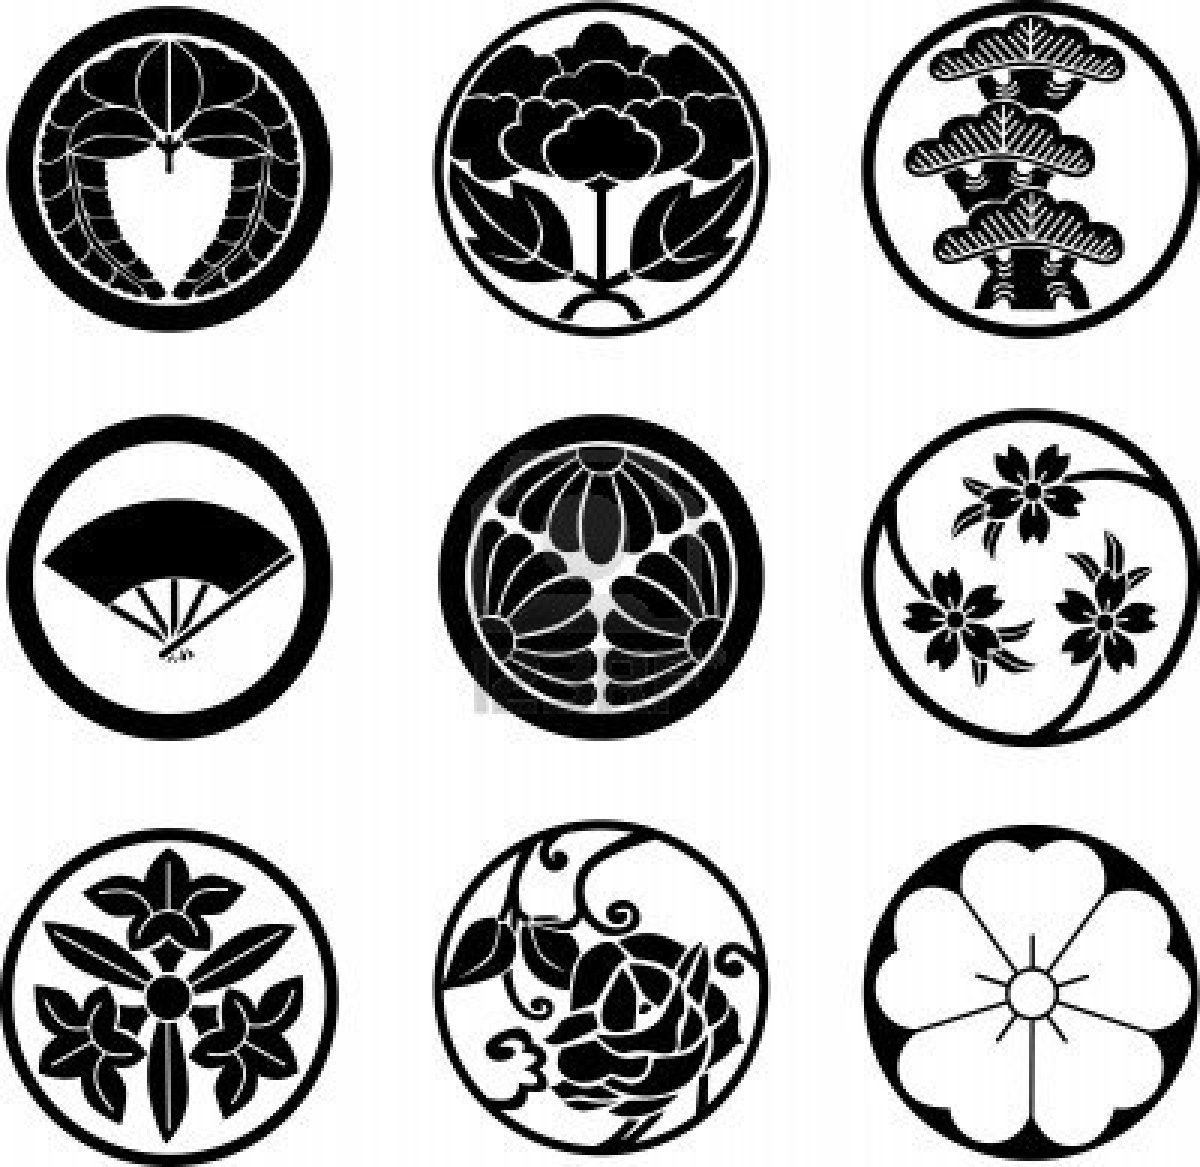 8817990 japanese family crestsg 12001167 tattoo research illustration of japanese family crests vector art clipart and stock vectors biocorpaavc Gallery